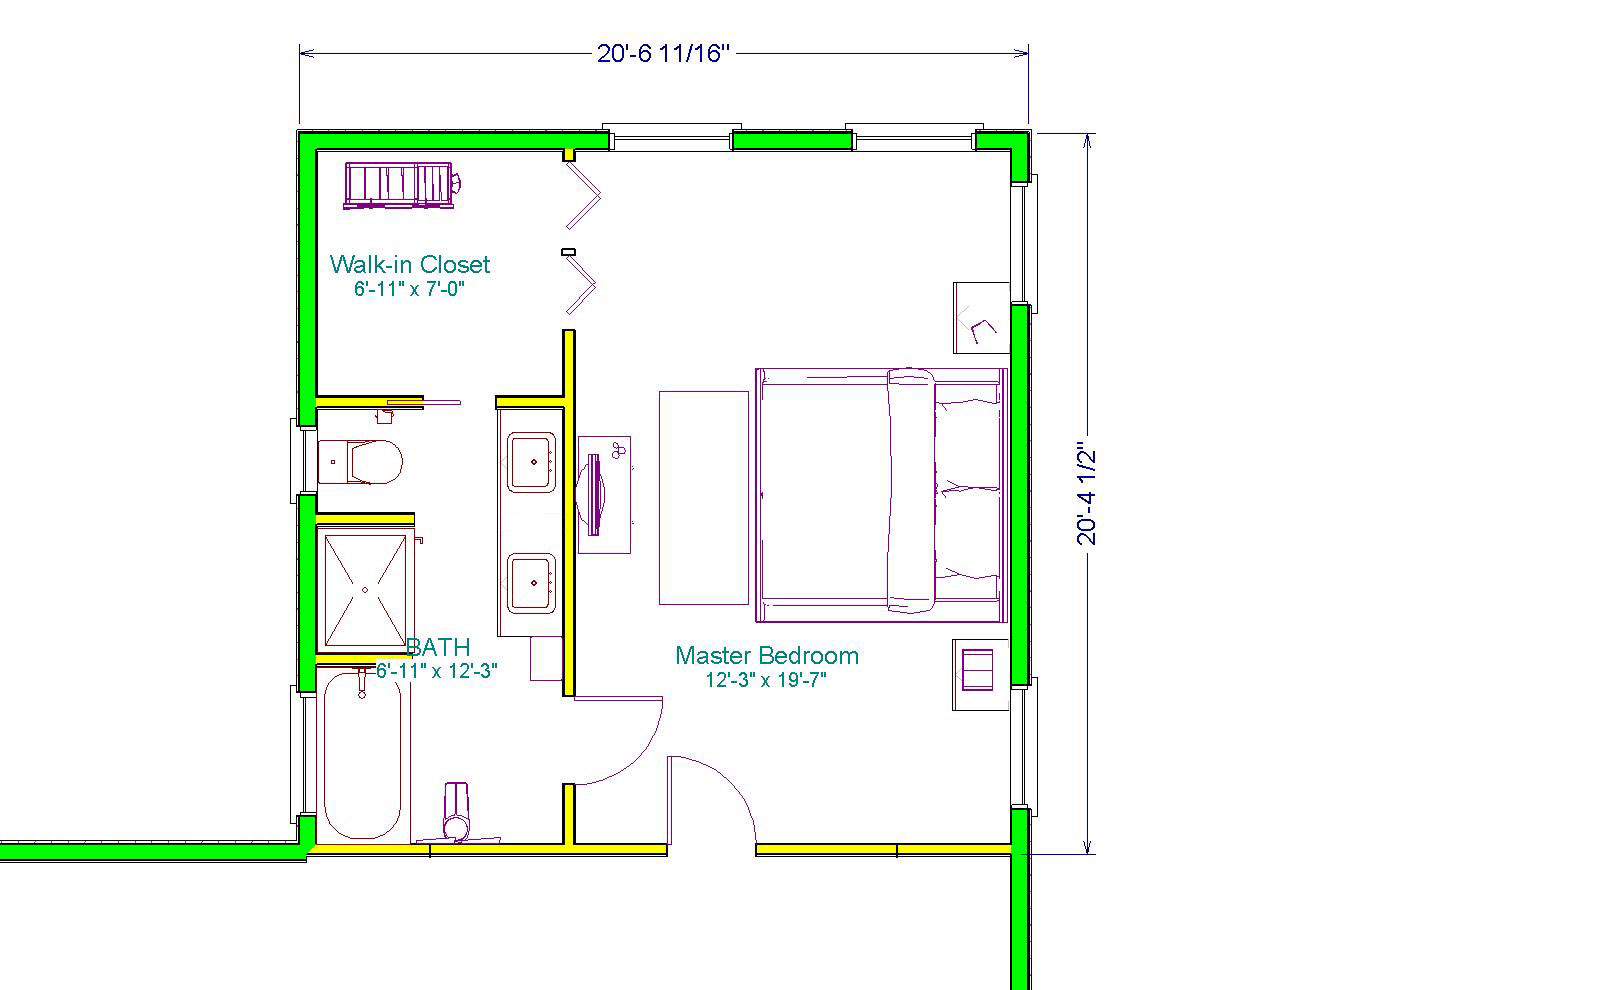 Lastly browse the room addition floor plan. The Executive Master Suite 400sq ft   Extensions   Simply Additions